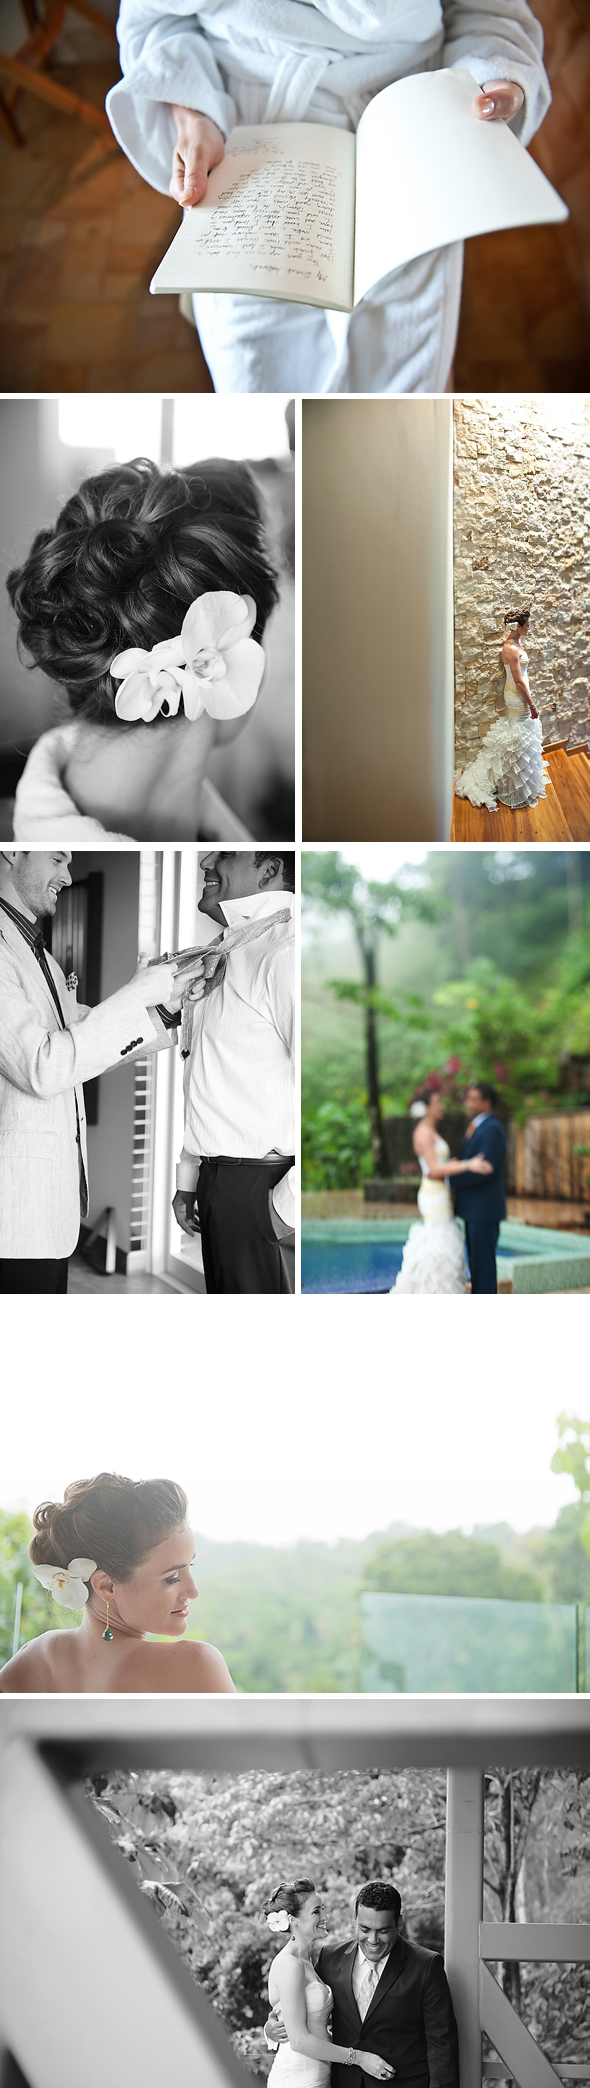 events costa rica2 Destination Wedding in Costa Rica   Jennifer & Ashraf